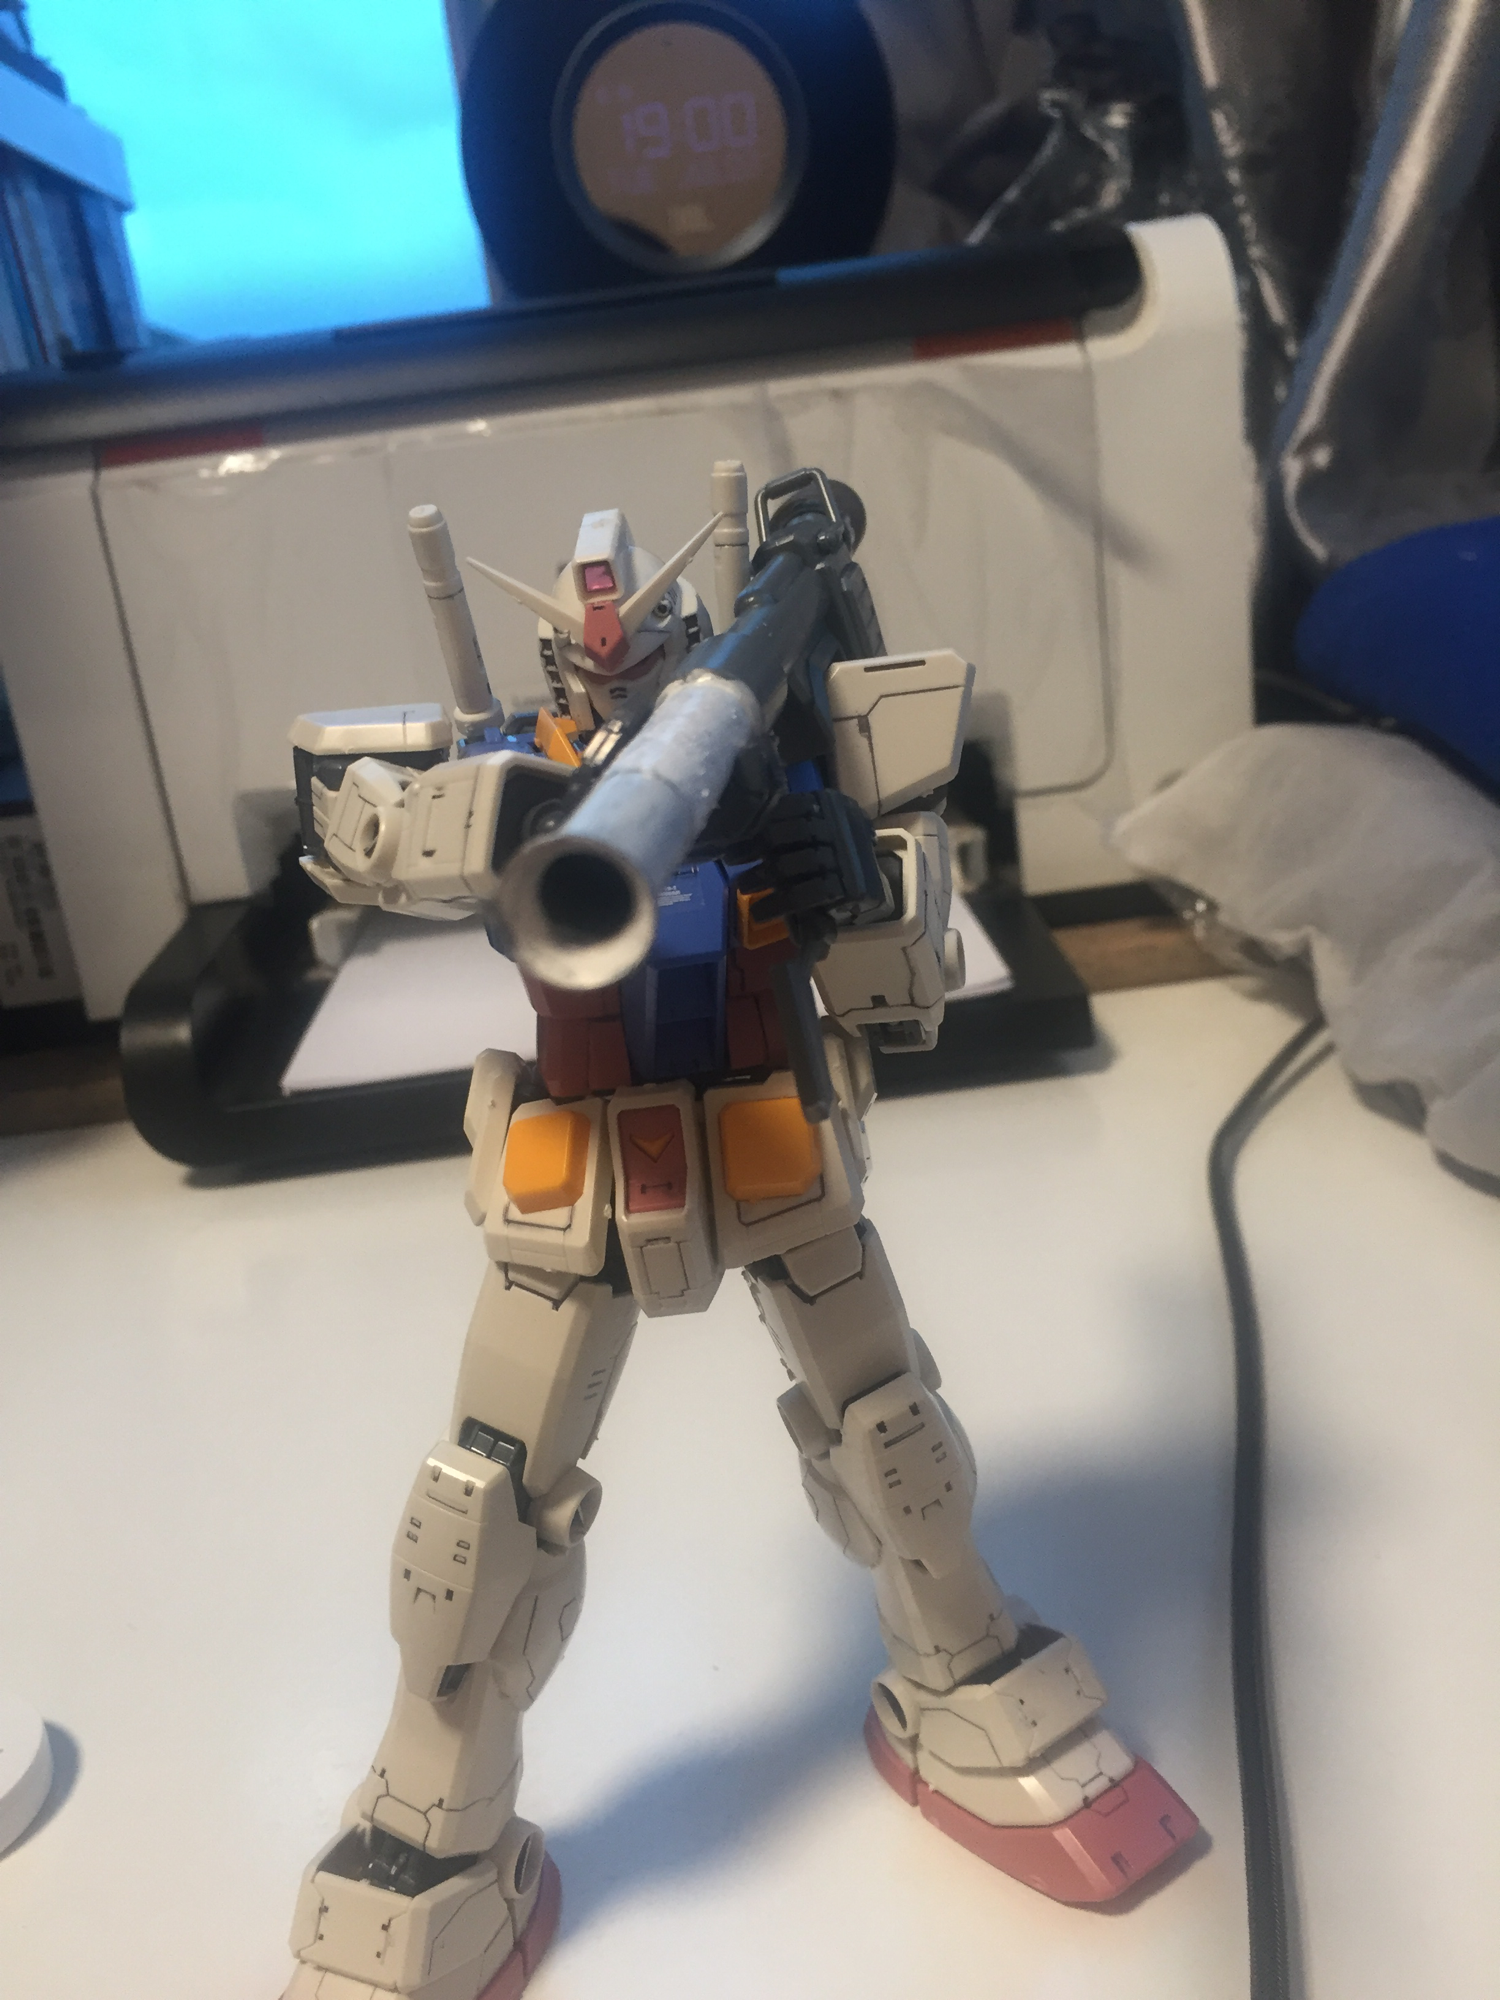 Finished my mg rx-78-2 gundam . What mg should I buy next